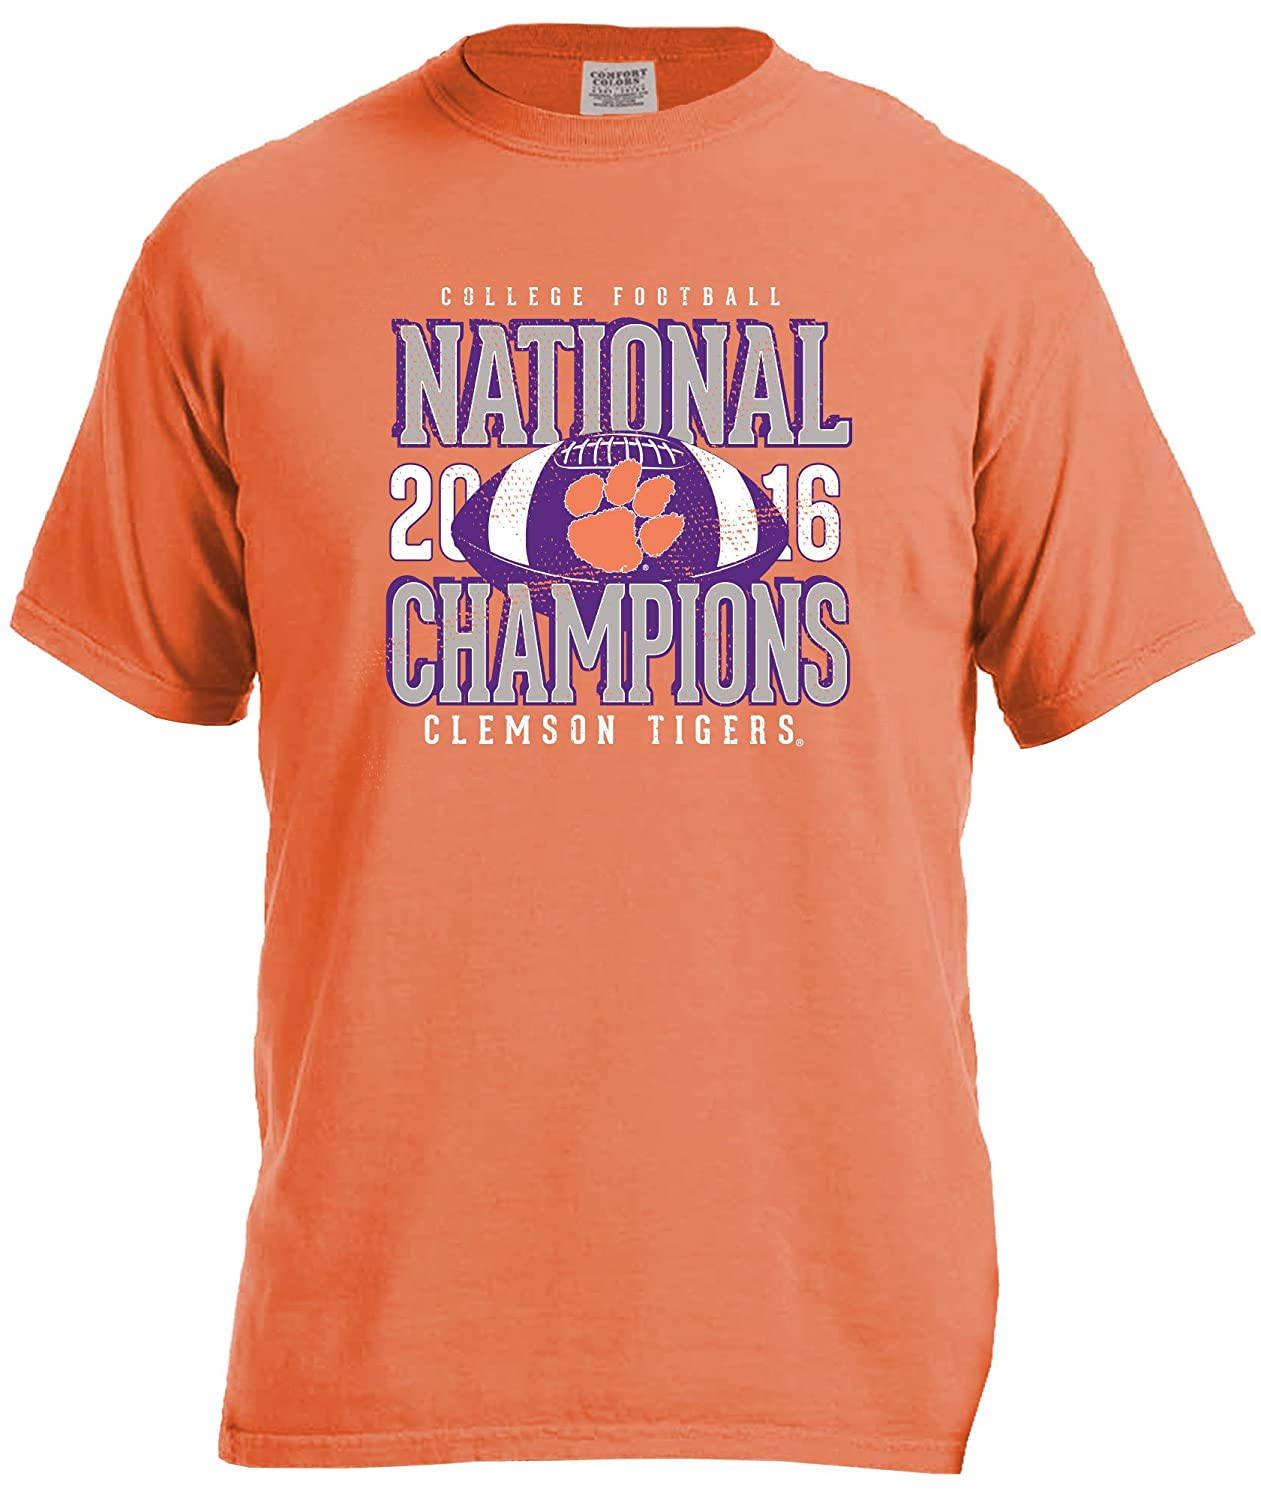 品質が完璧 NCAA orange) National Champ Medium Stacked快適カラー半袖Tシャツ Medium オレンジ(Burnt orange) B01N9IKYZZ B01N9IKYZZ, 球磨郡:fd8a7372 --- a0267596.xsph.ru